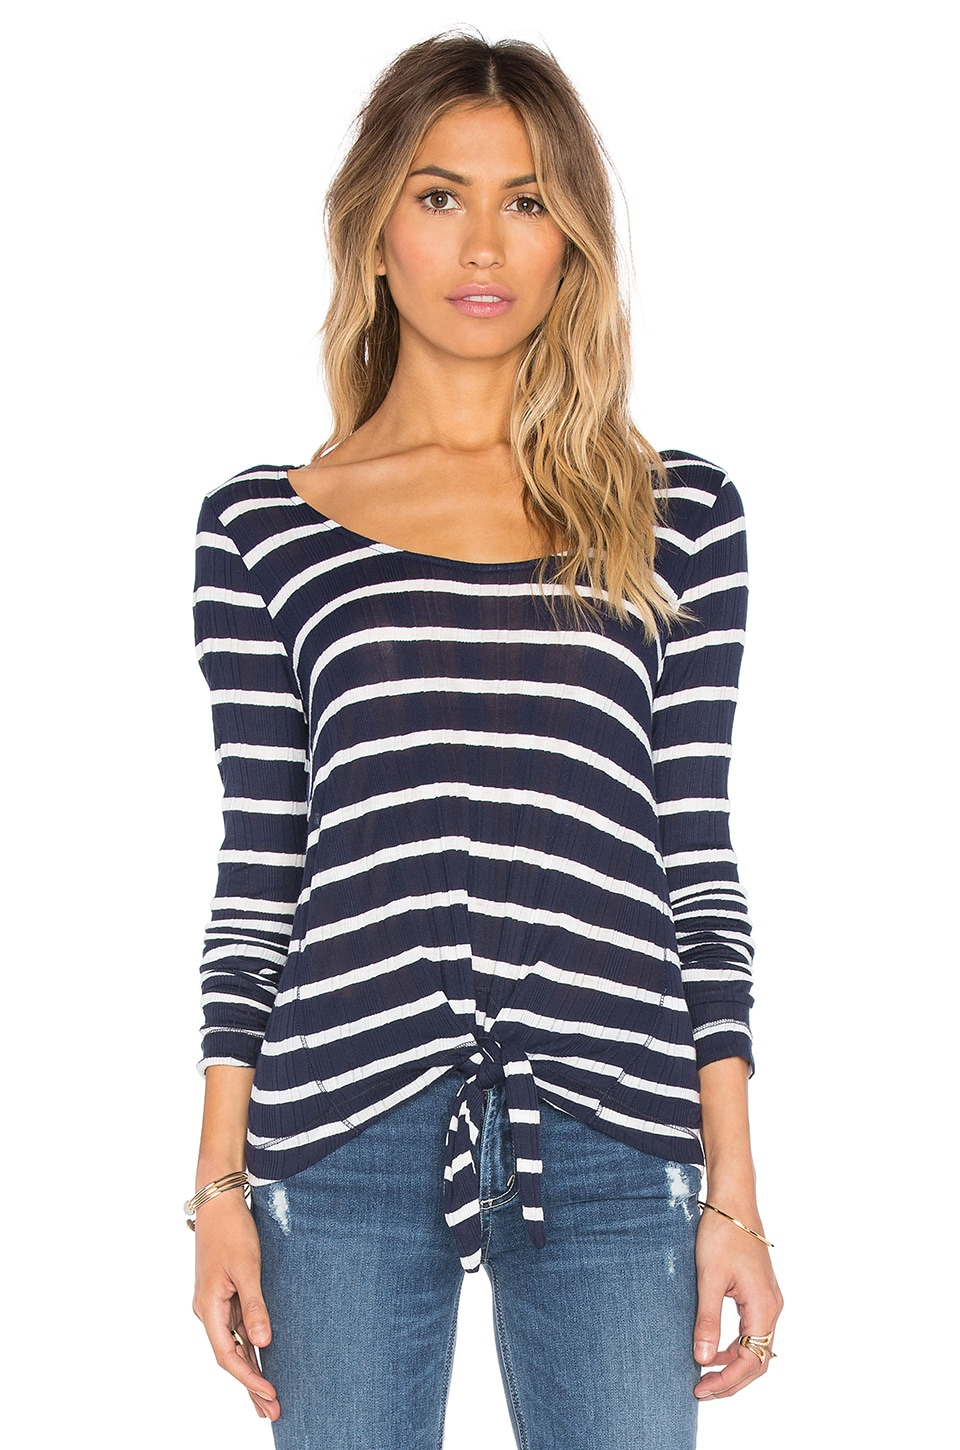 Huntington Stripe Rib Long Sleeve Top by Splendid